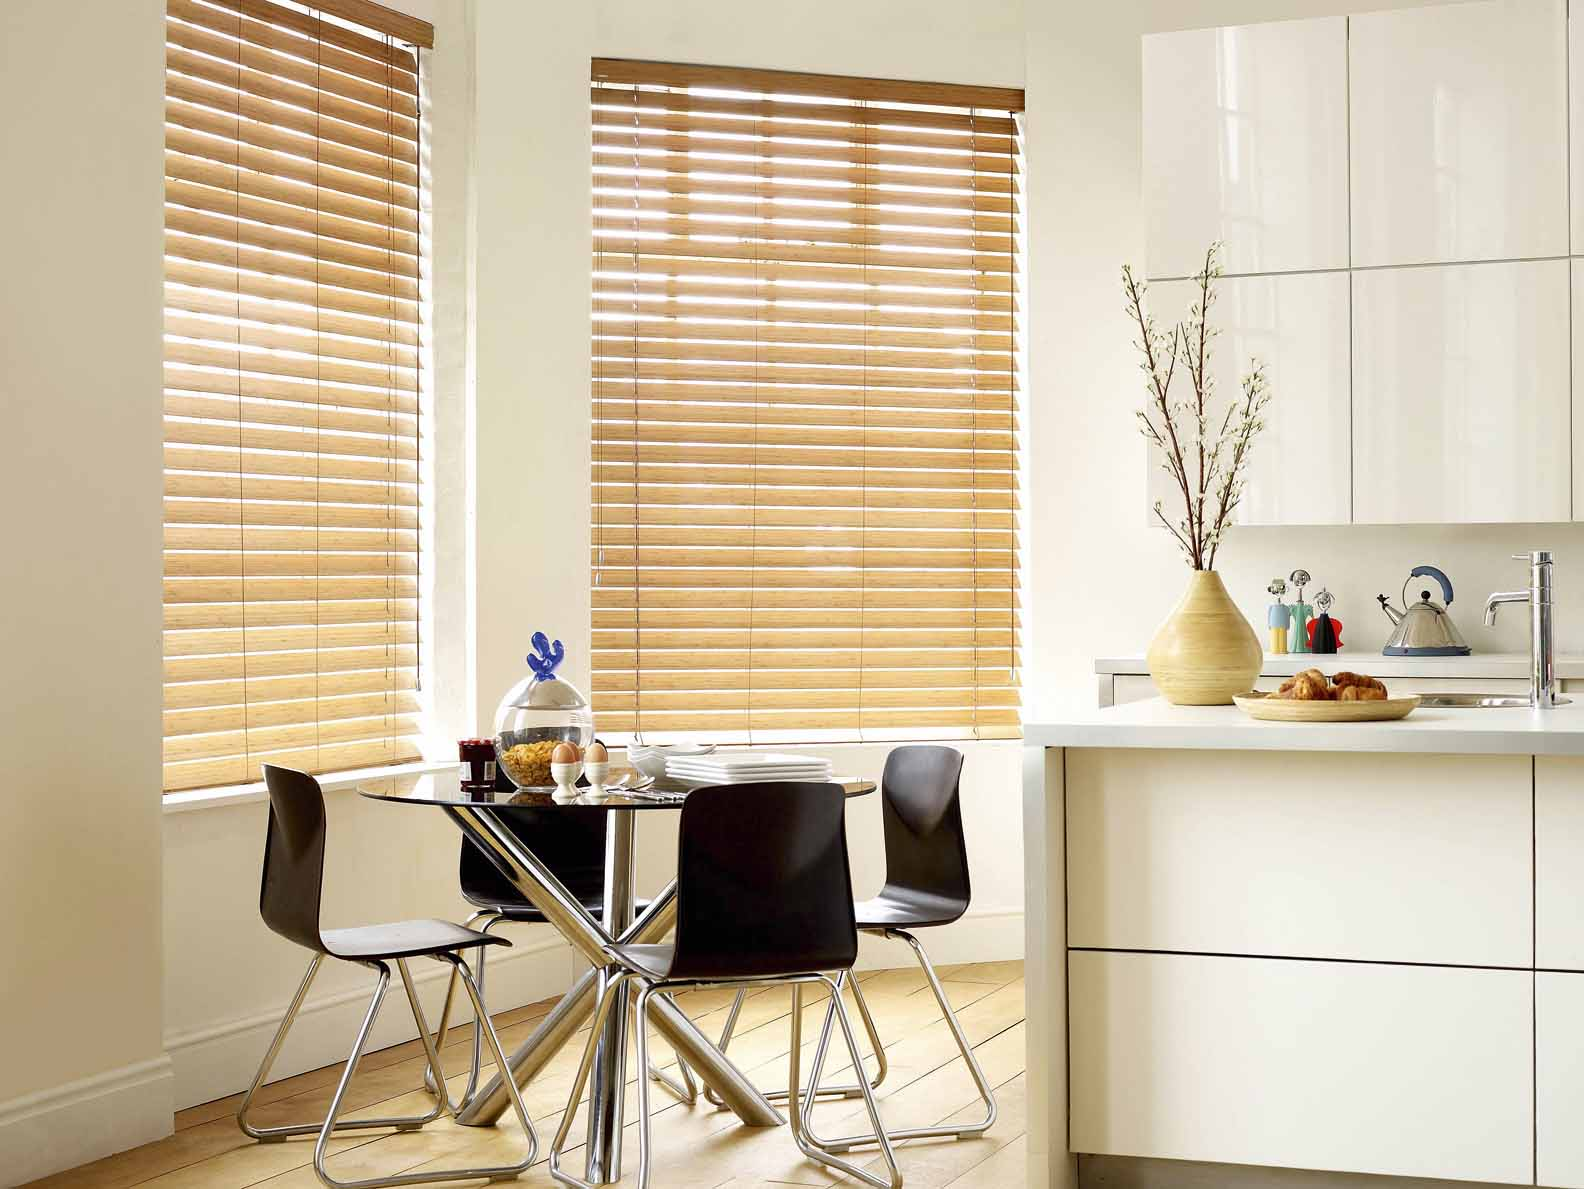 Horizontal blinds for kitchen